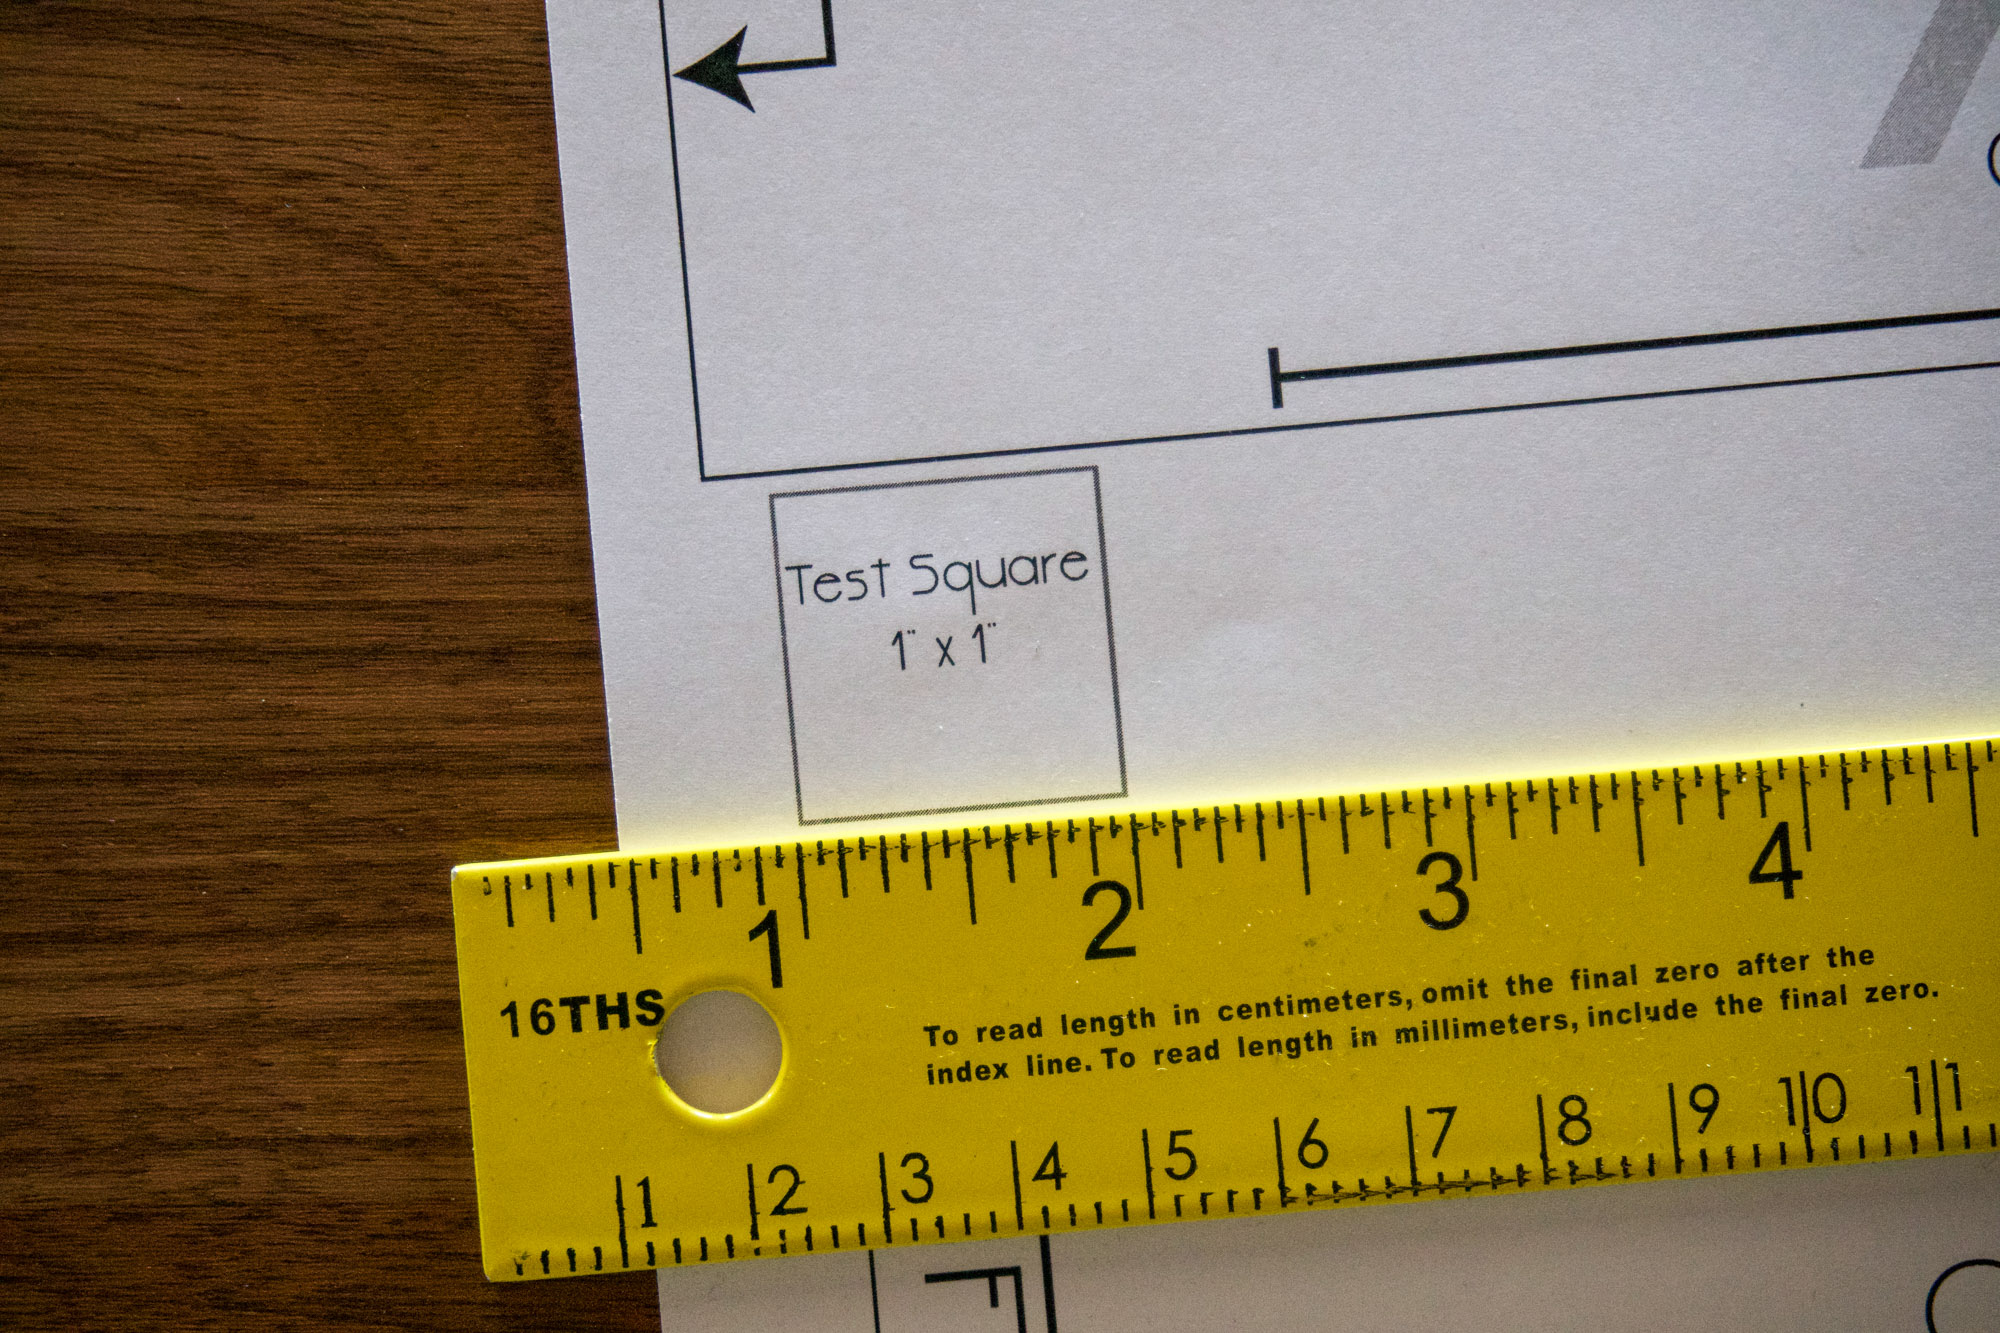 Measuring the test square on the pattern.